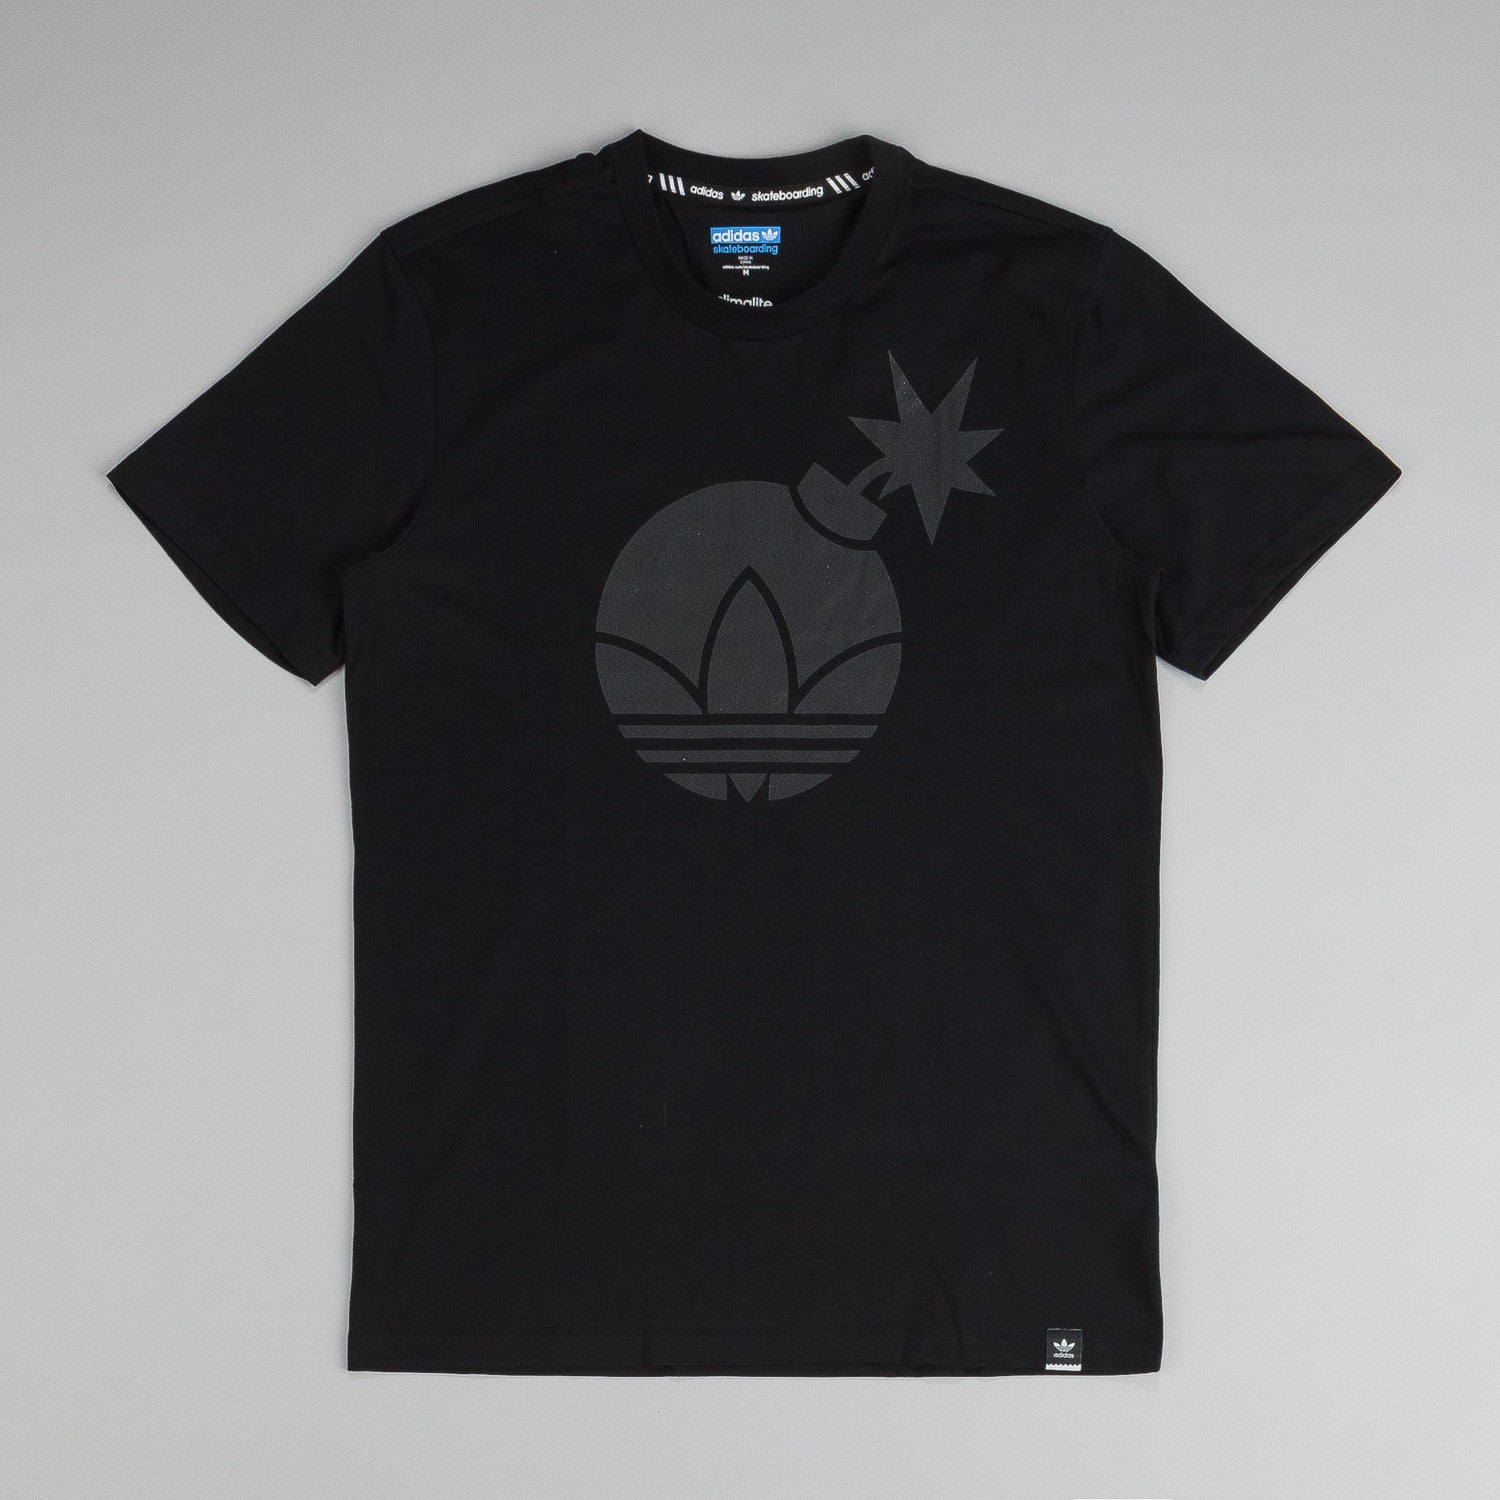 Adidas X The Hundreds T-Shirt